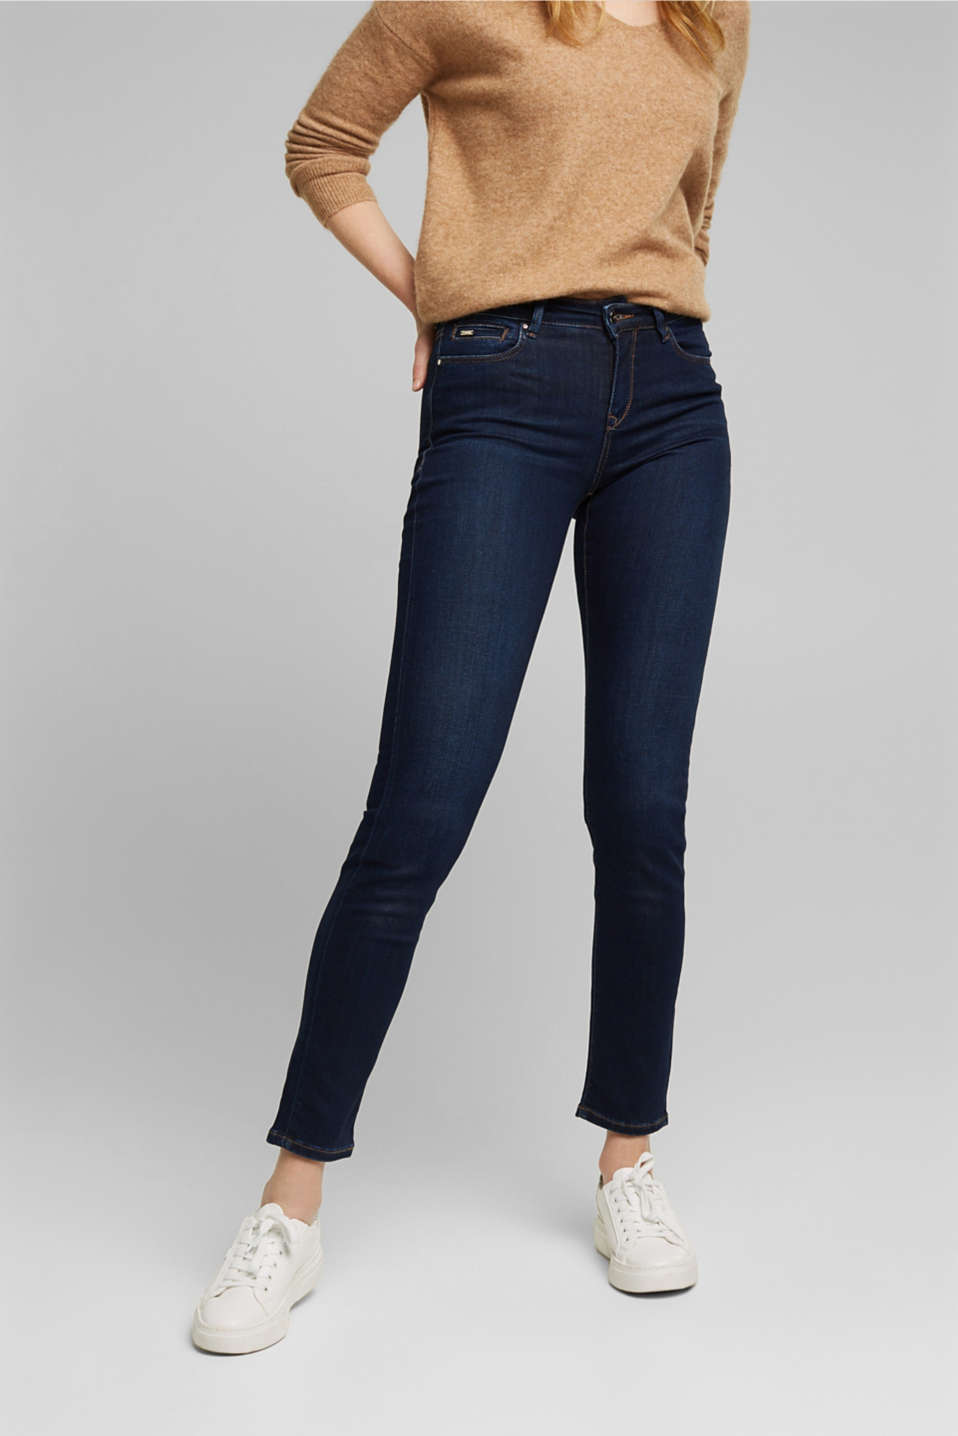 Esprit - Business jeans met comfortabele stretch